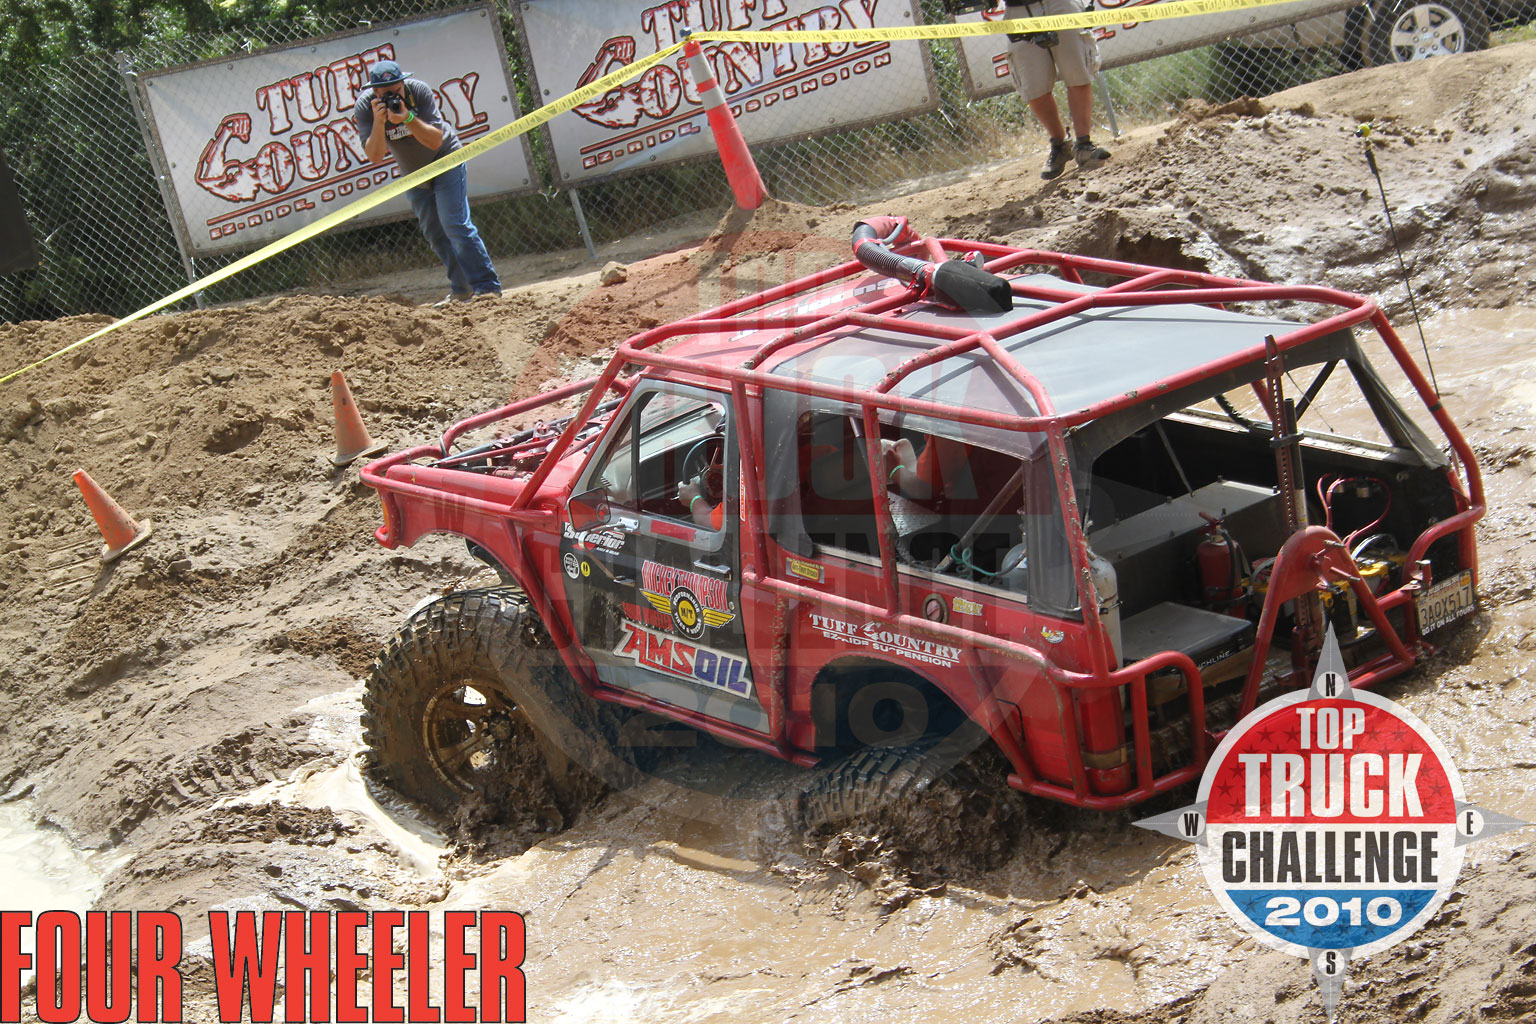 2010 Top Truck Challenge Obstacle Course Darren Sinkey 1989 Ford Bronco